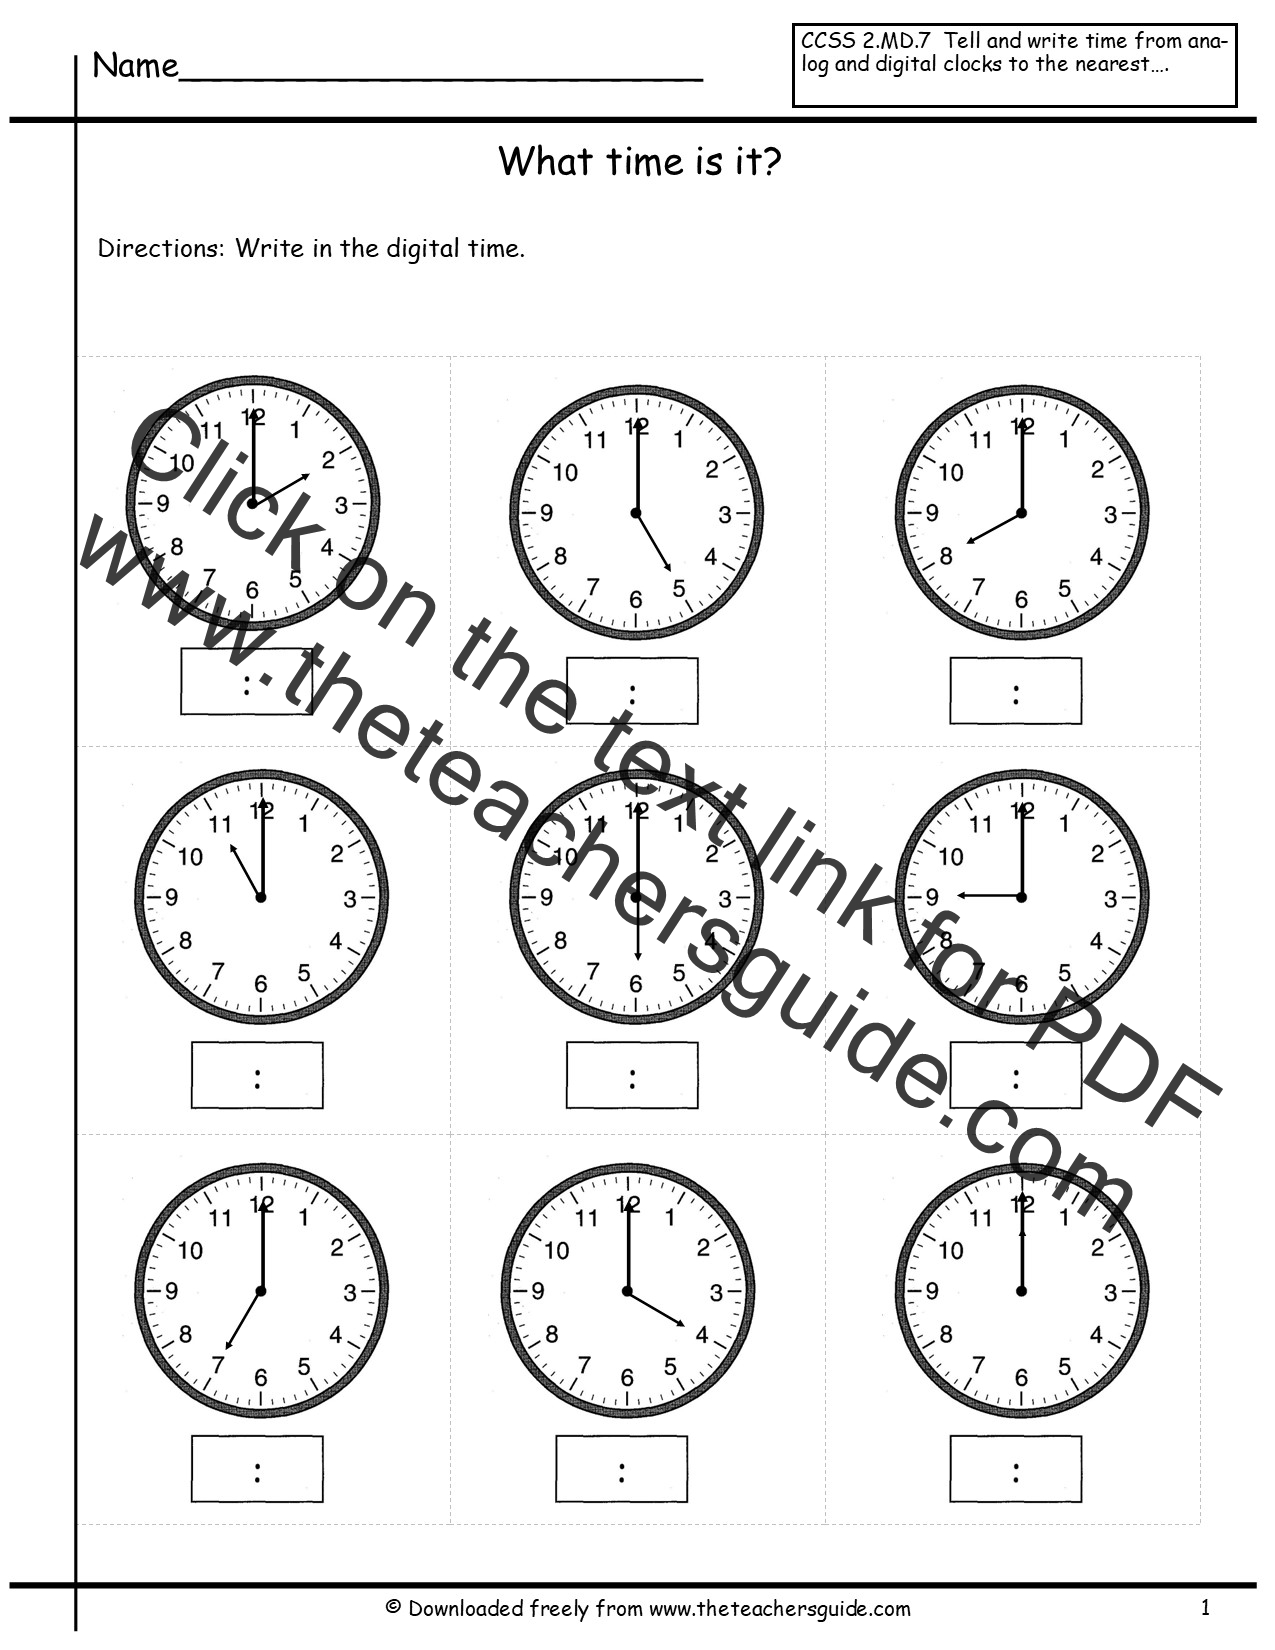 Aldiablosus  Splendid Telling Time Worksheets From The Teachers Guide With Hot Telling Time To The Nearest Hour Worksheet  With Breathtaking Harry Potter Printable Worksheets Also Text Feature Worksheets In Addition Telling Time Worksheets Grade  And Sixth Grade Printable Math Worksheets As Well As Volume Of A Prism Worksheet Pdf Additionally Printable Skeleton Worksheet From Theteachersguidecom With Aldiablosus  Hot Telling Time Worksheets From The Teachers Guide With Breathtaking Telling Time To The Nearest Hour Worksheet  And Splendid Harry Potter Printable Worksheets Also Text Feature Worksheets In Addition Telling Time Worksheets Grade  From Theteachersguidecom